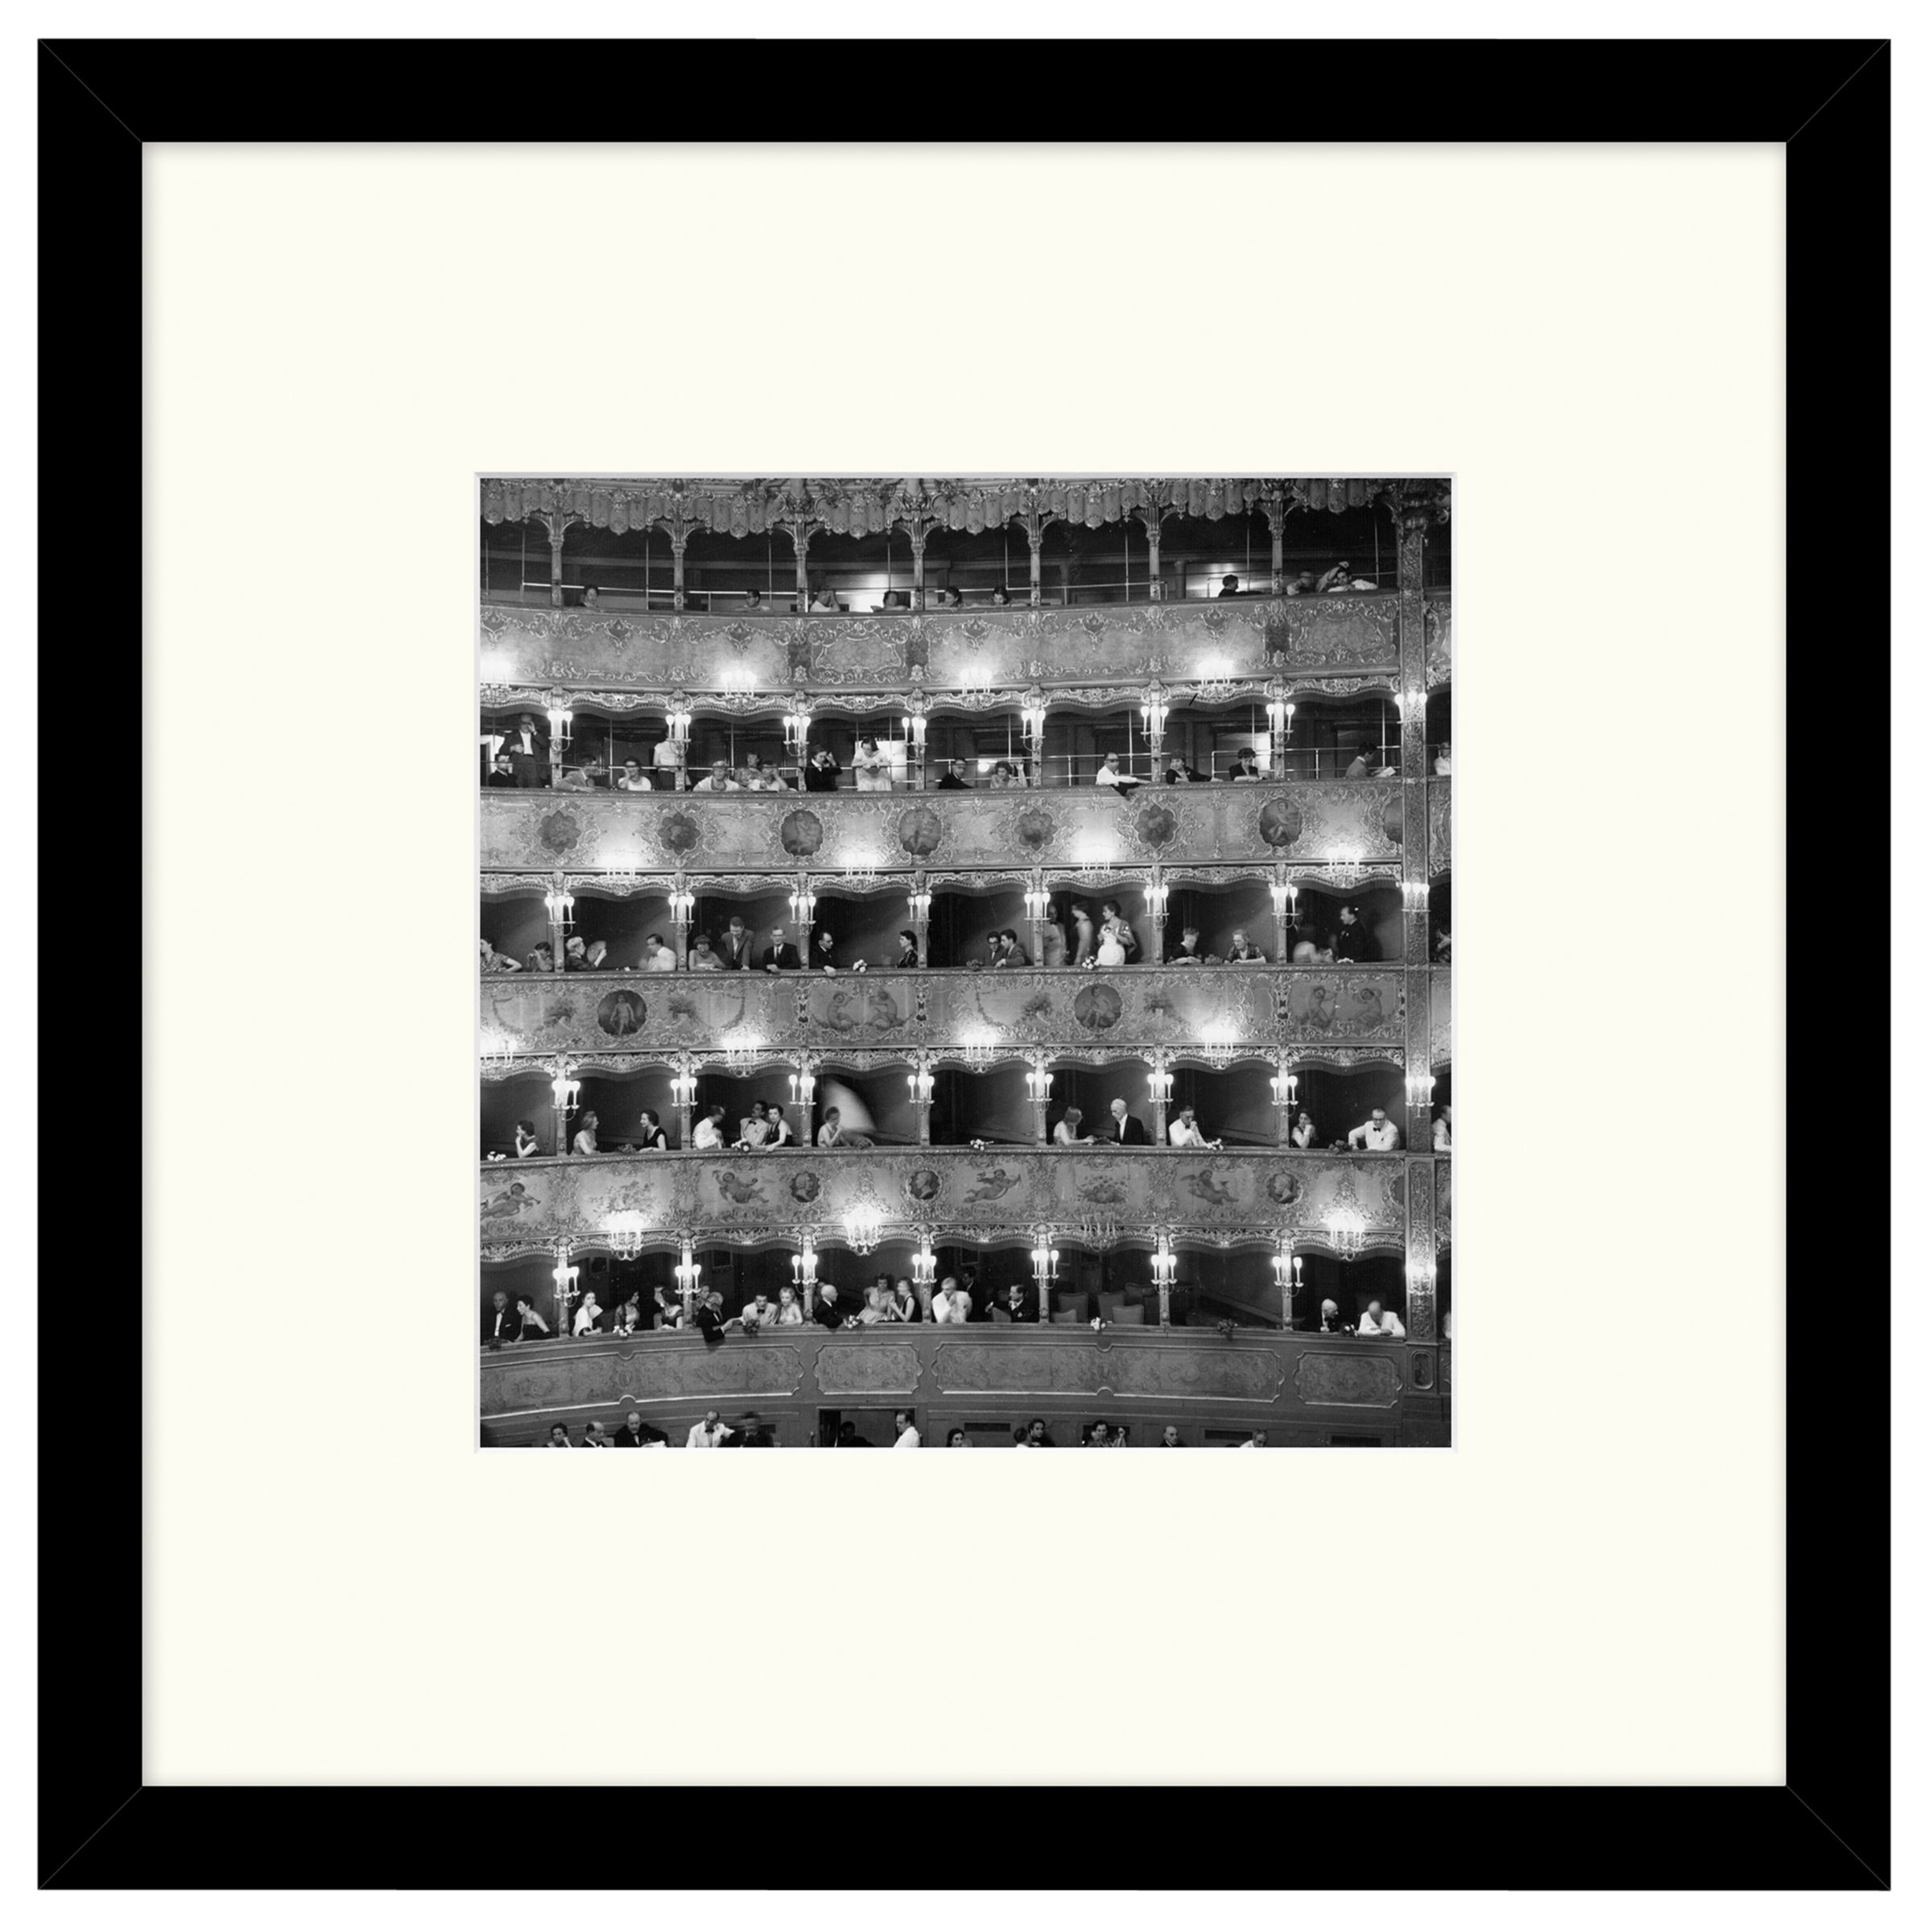 Getty Images Gallery Getty Images Gallery - La Fenice Framed Print, 49 x 49cm